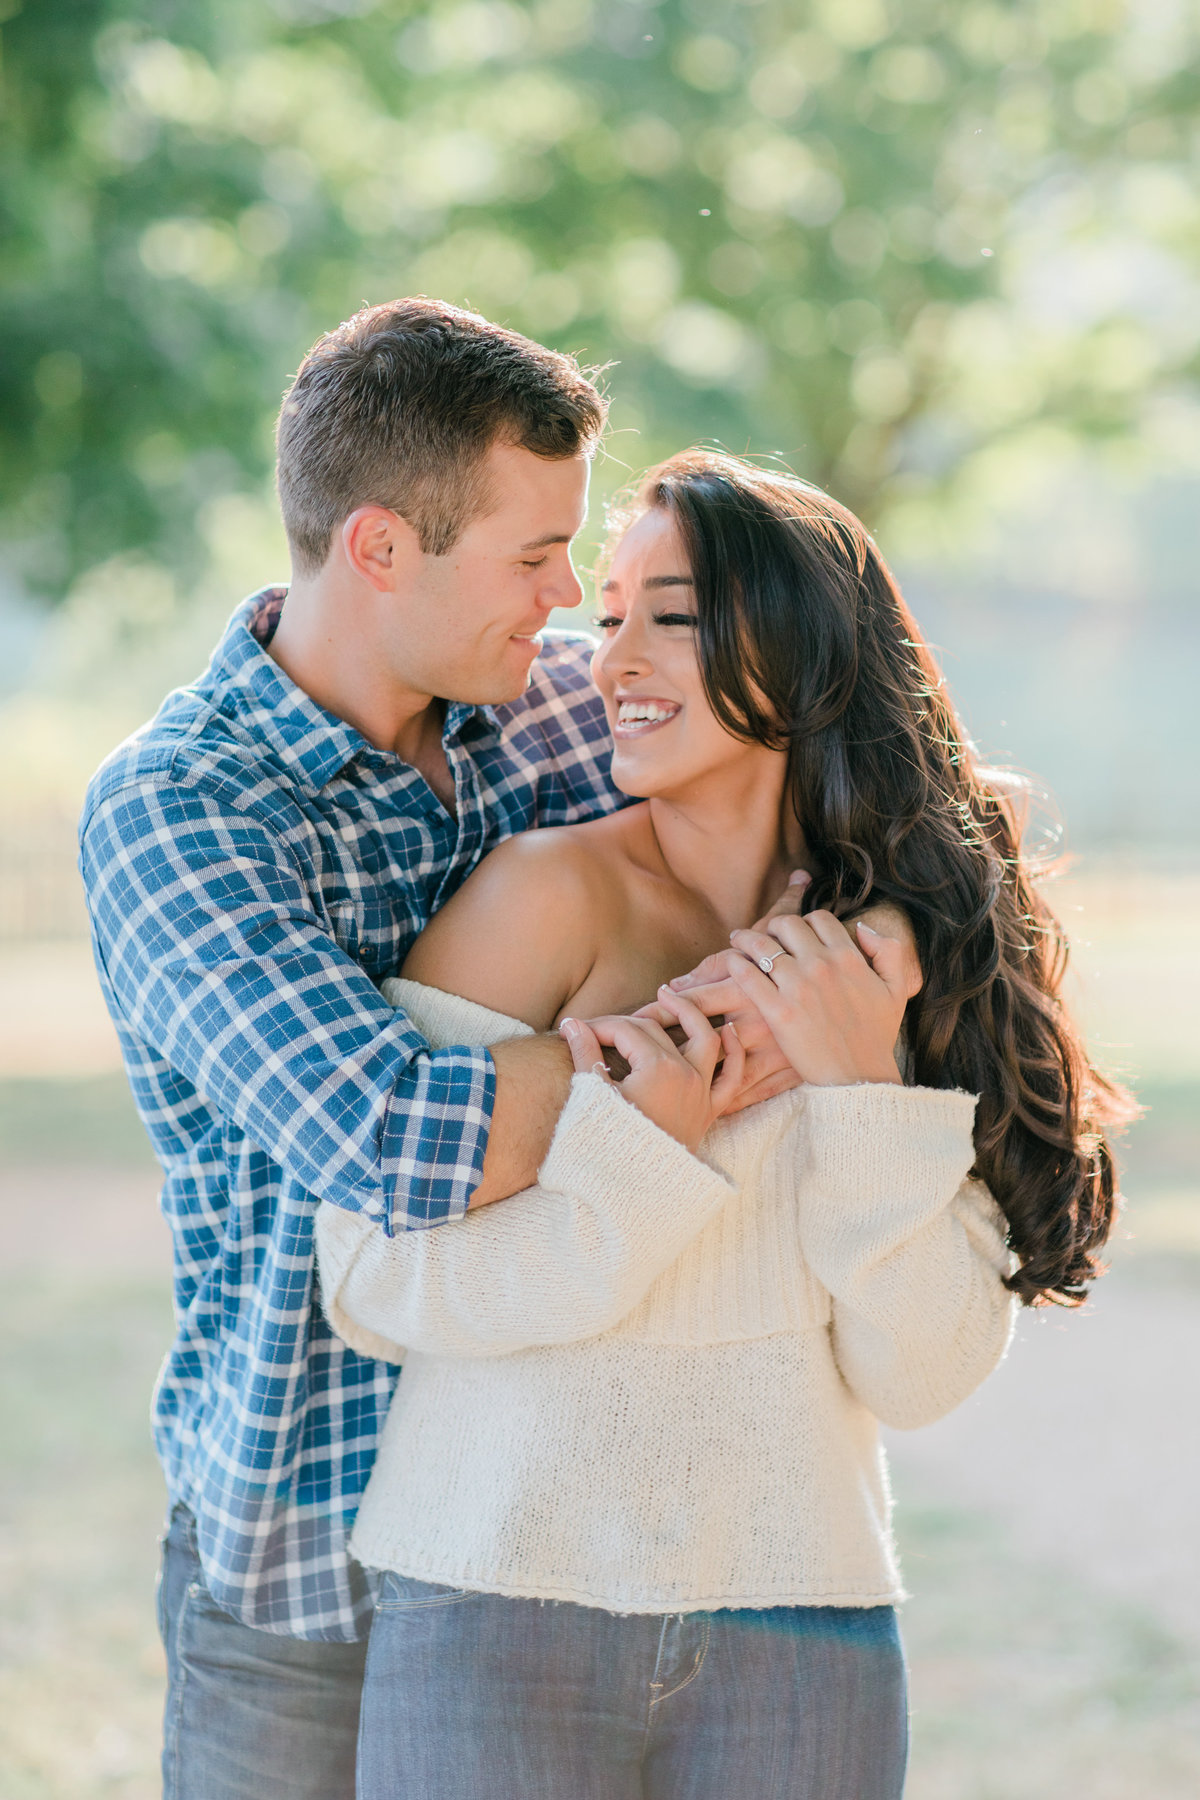 SkyMeadowsPark_Virginia_Engagement_Session_AngelikaJohnsPhotography-0107